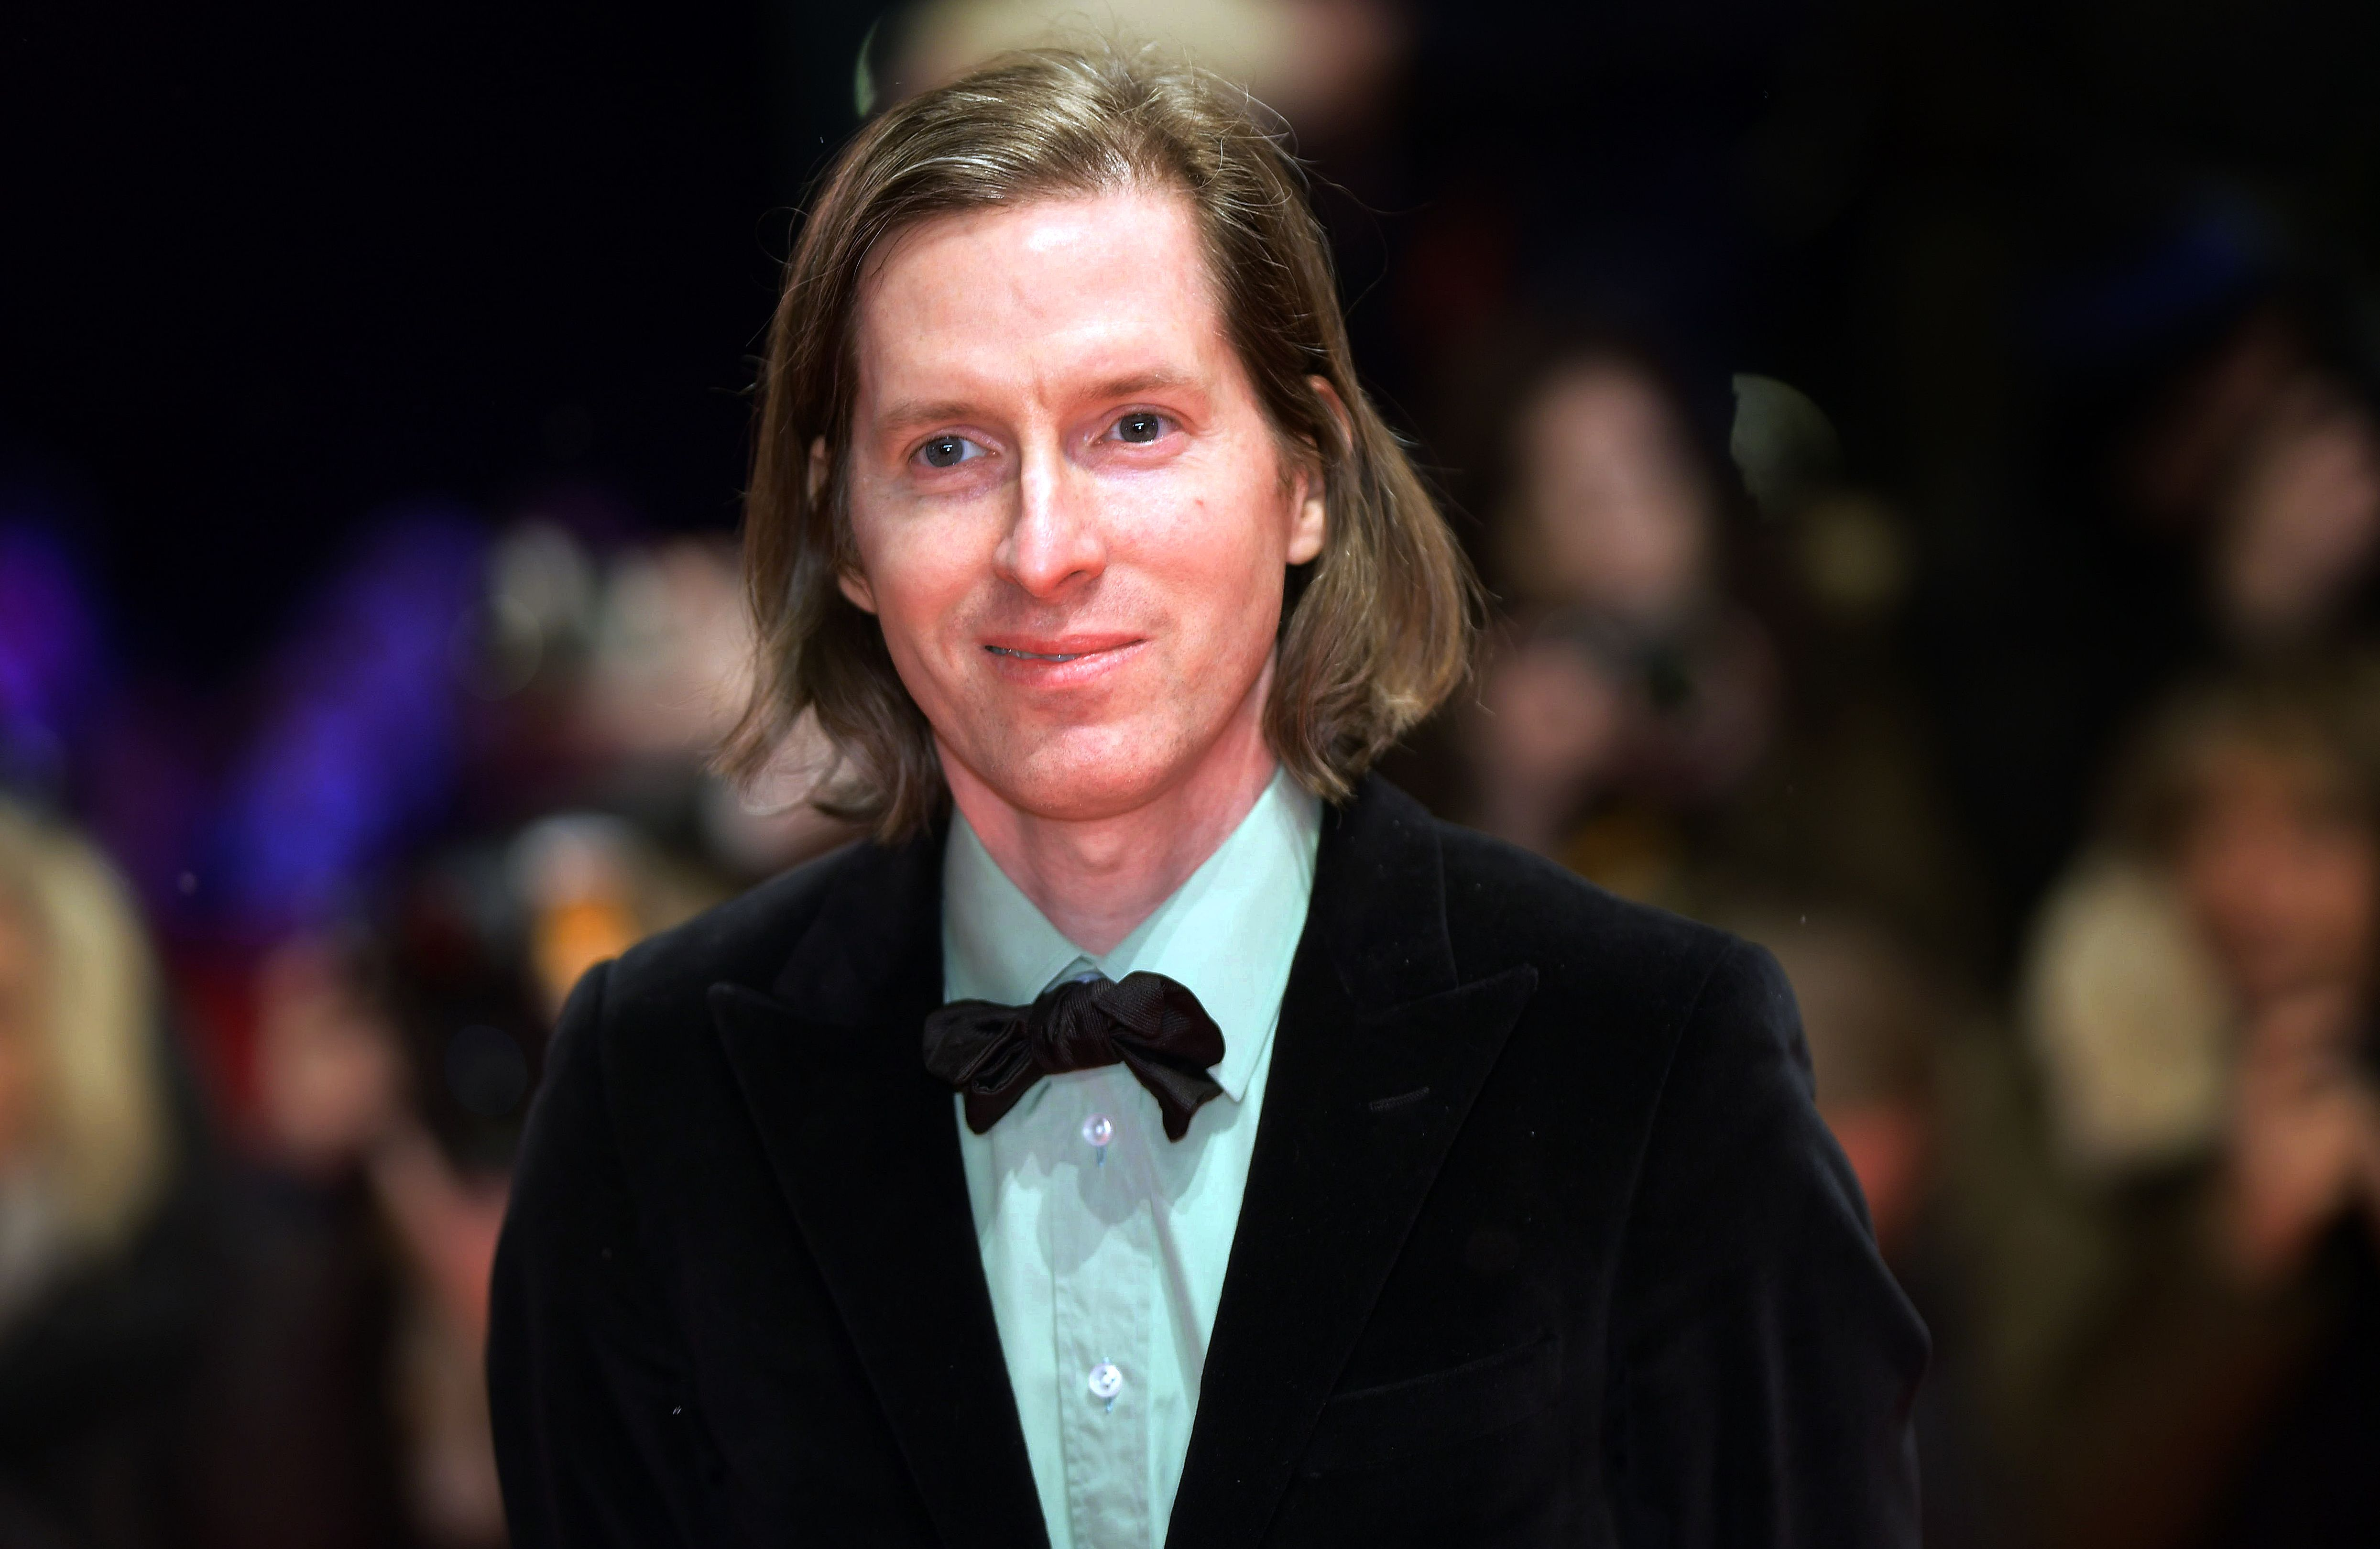 Wes Anderson Curated a Museum Exhibit in Vienna, but Is It Any Good?